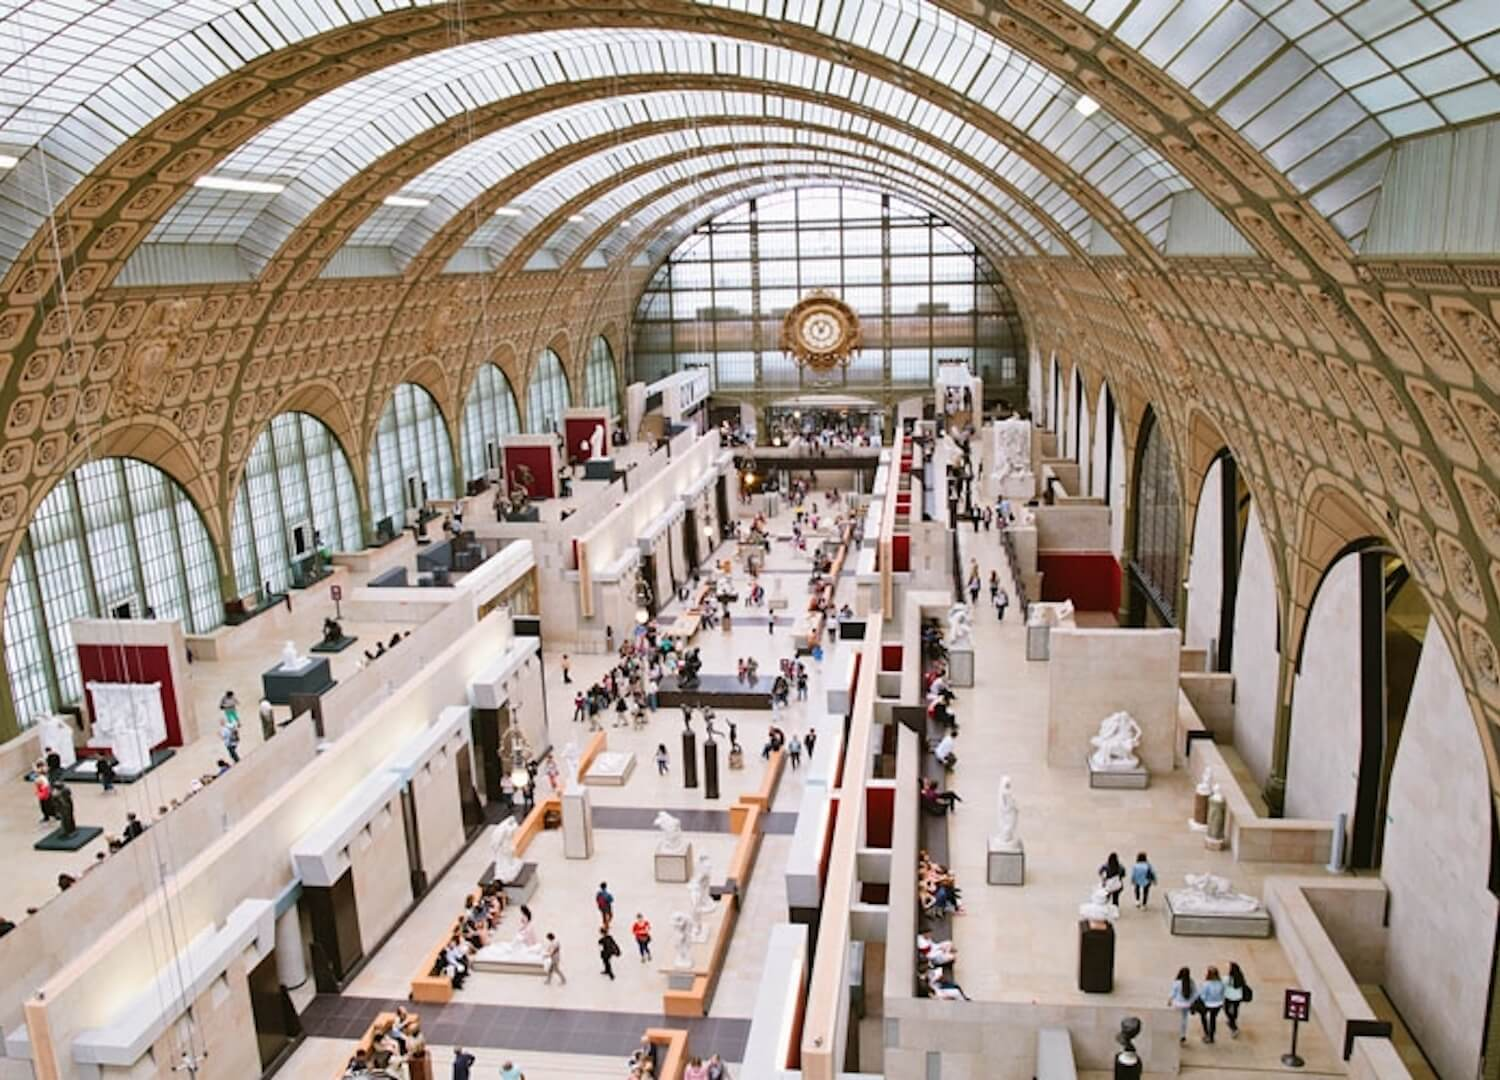 est living paris travel guide musee dorsay 1